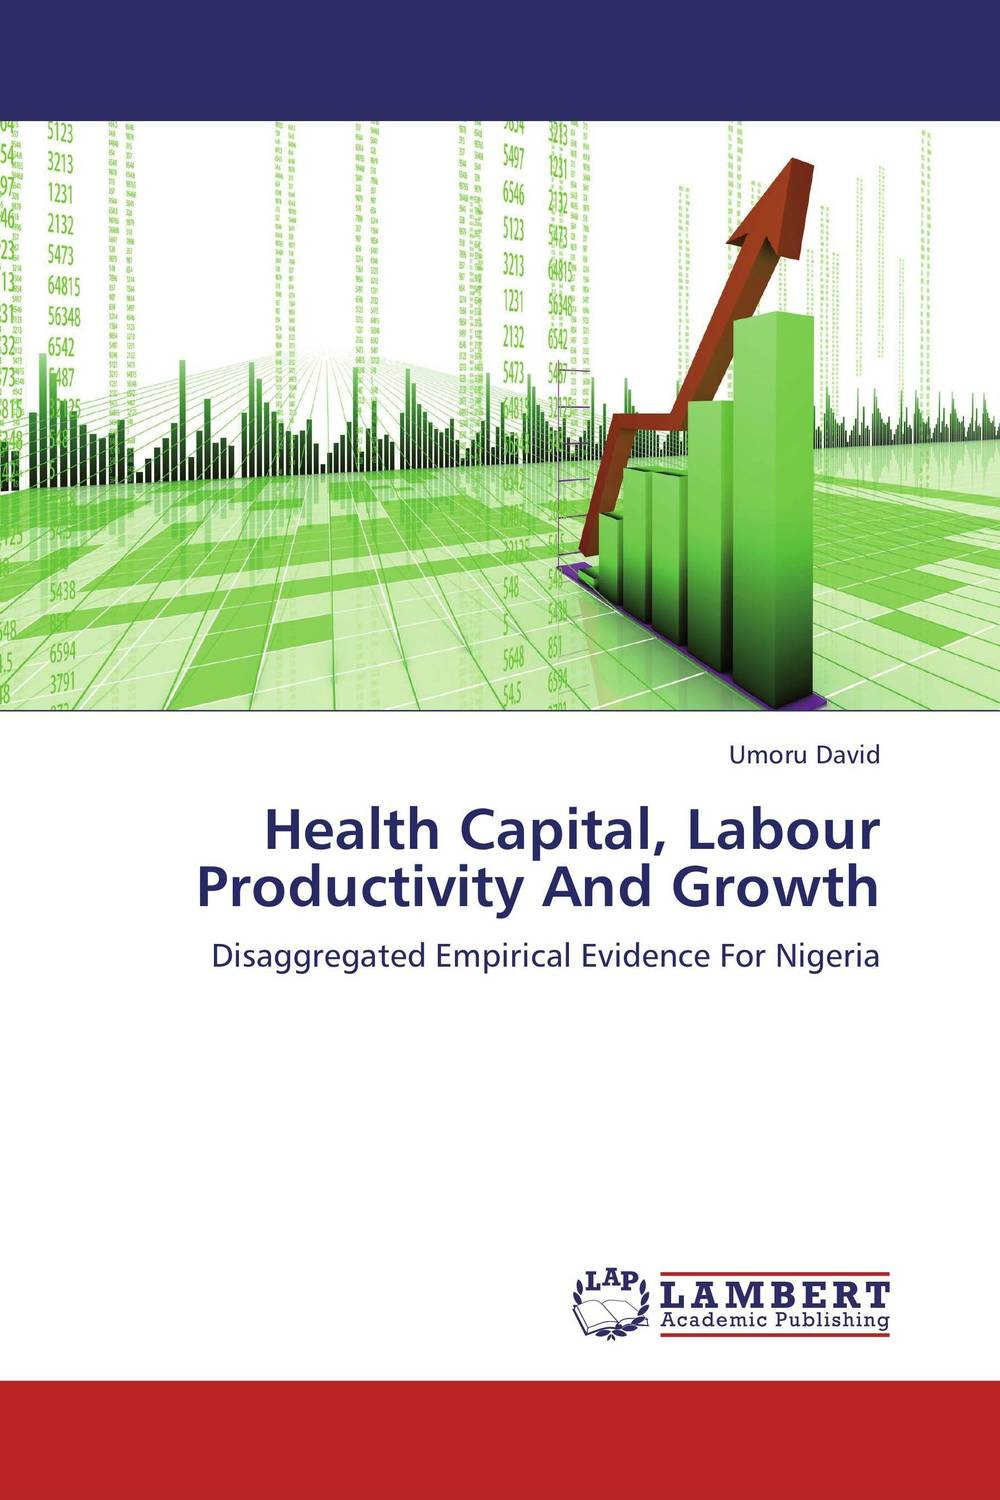 Health Capital, Labour Productivity And Growth wesley whittaker a the little book of venture capital investing empowering economic growth and investment portfolios